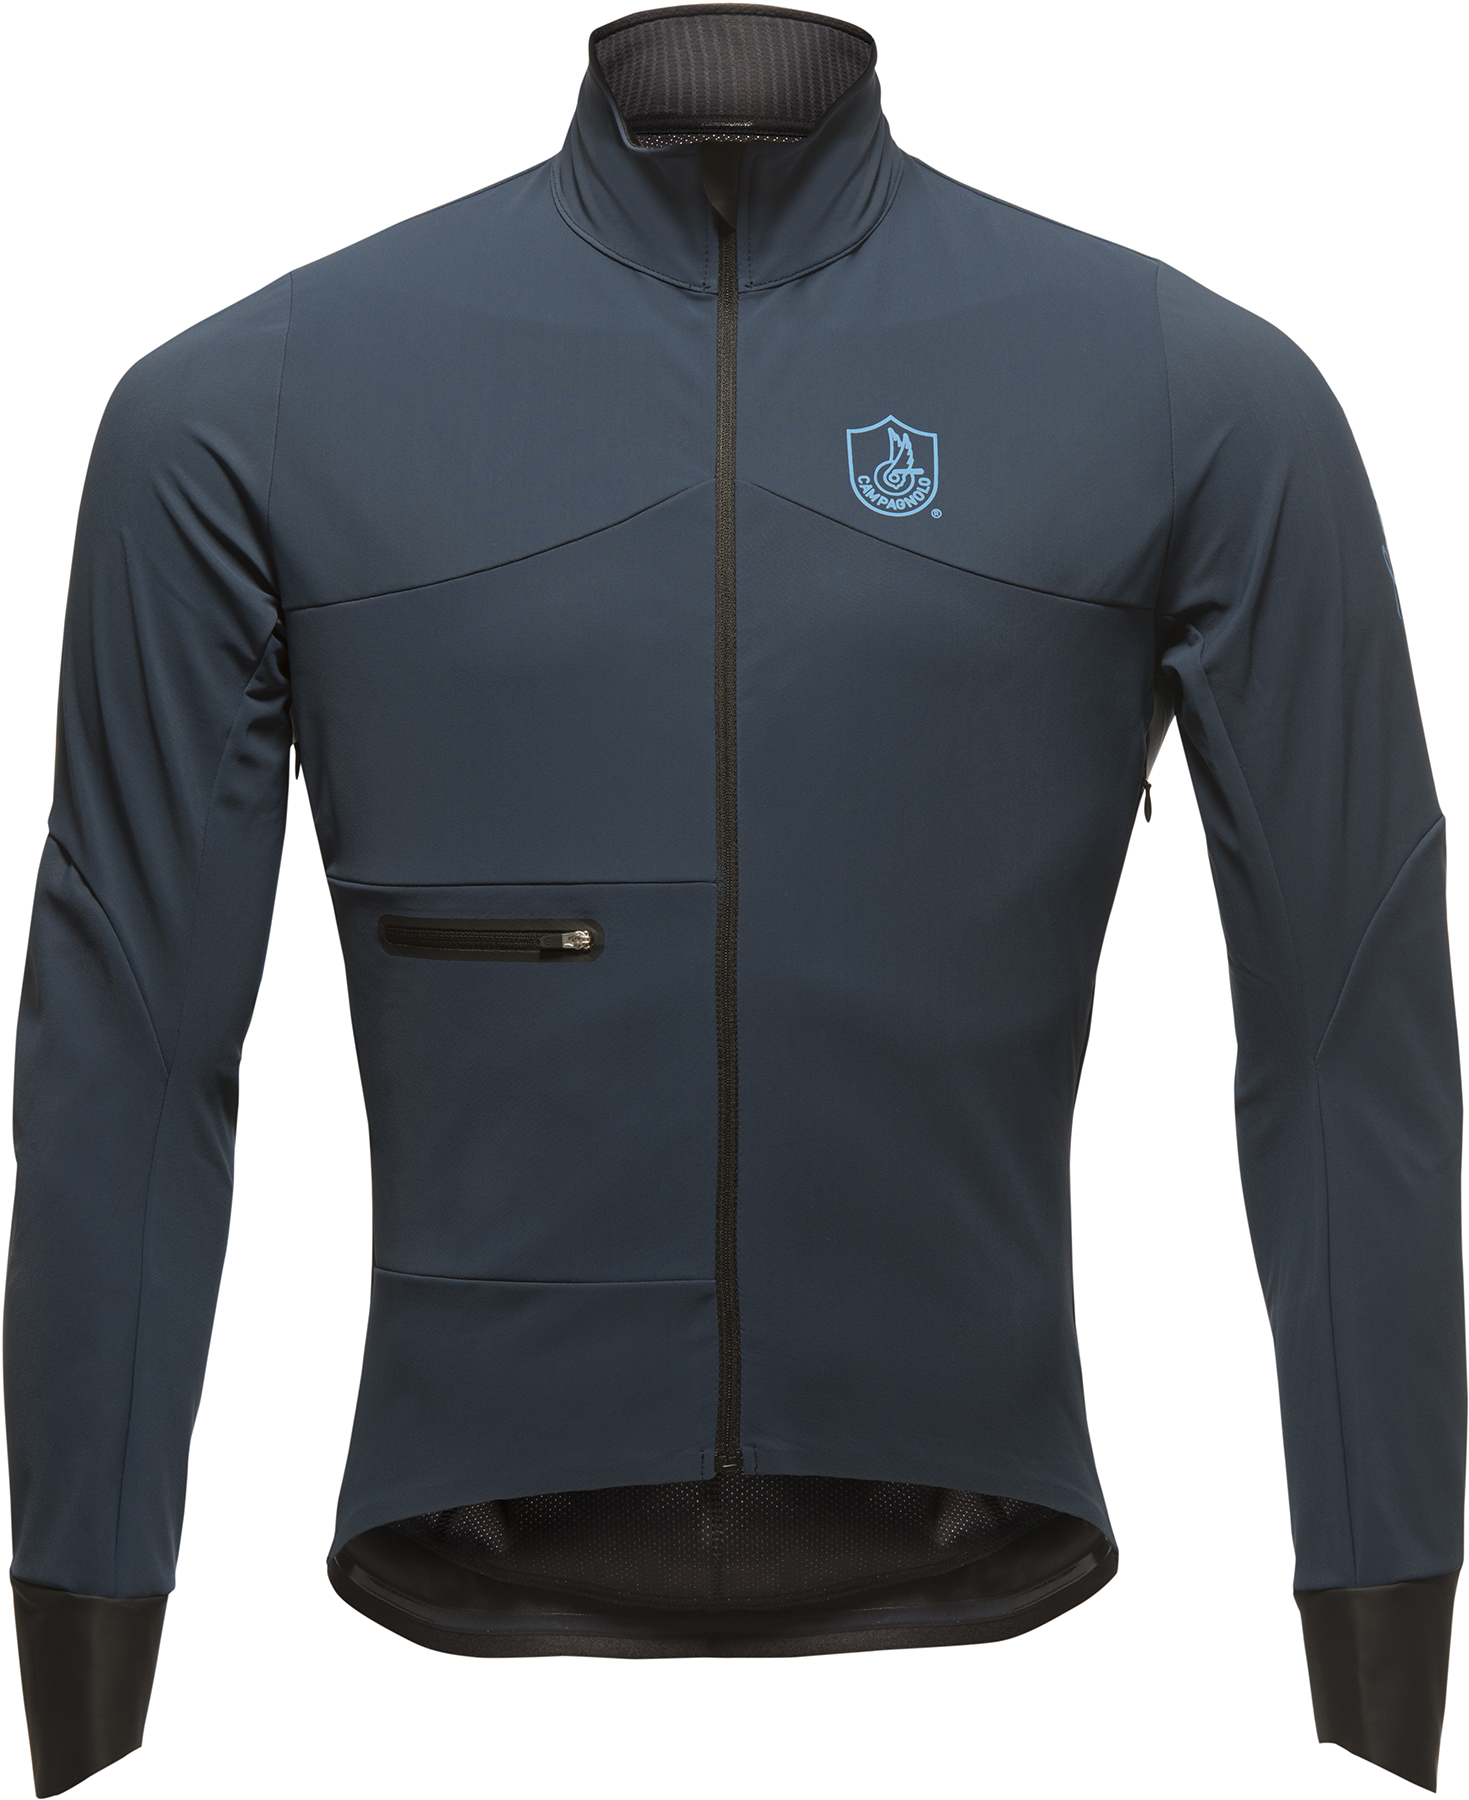 Campagnolo C-TECH Winter Jacket | Jackets